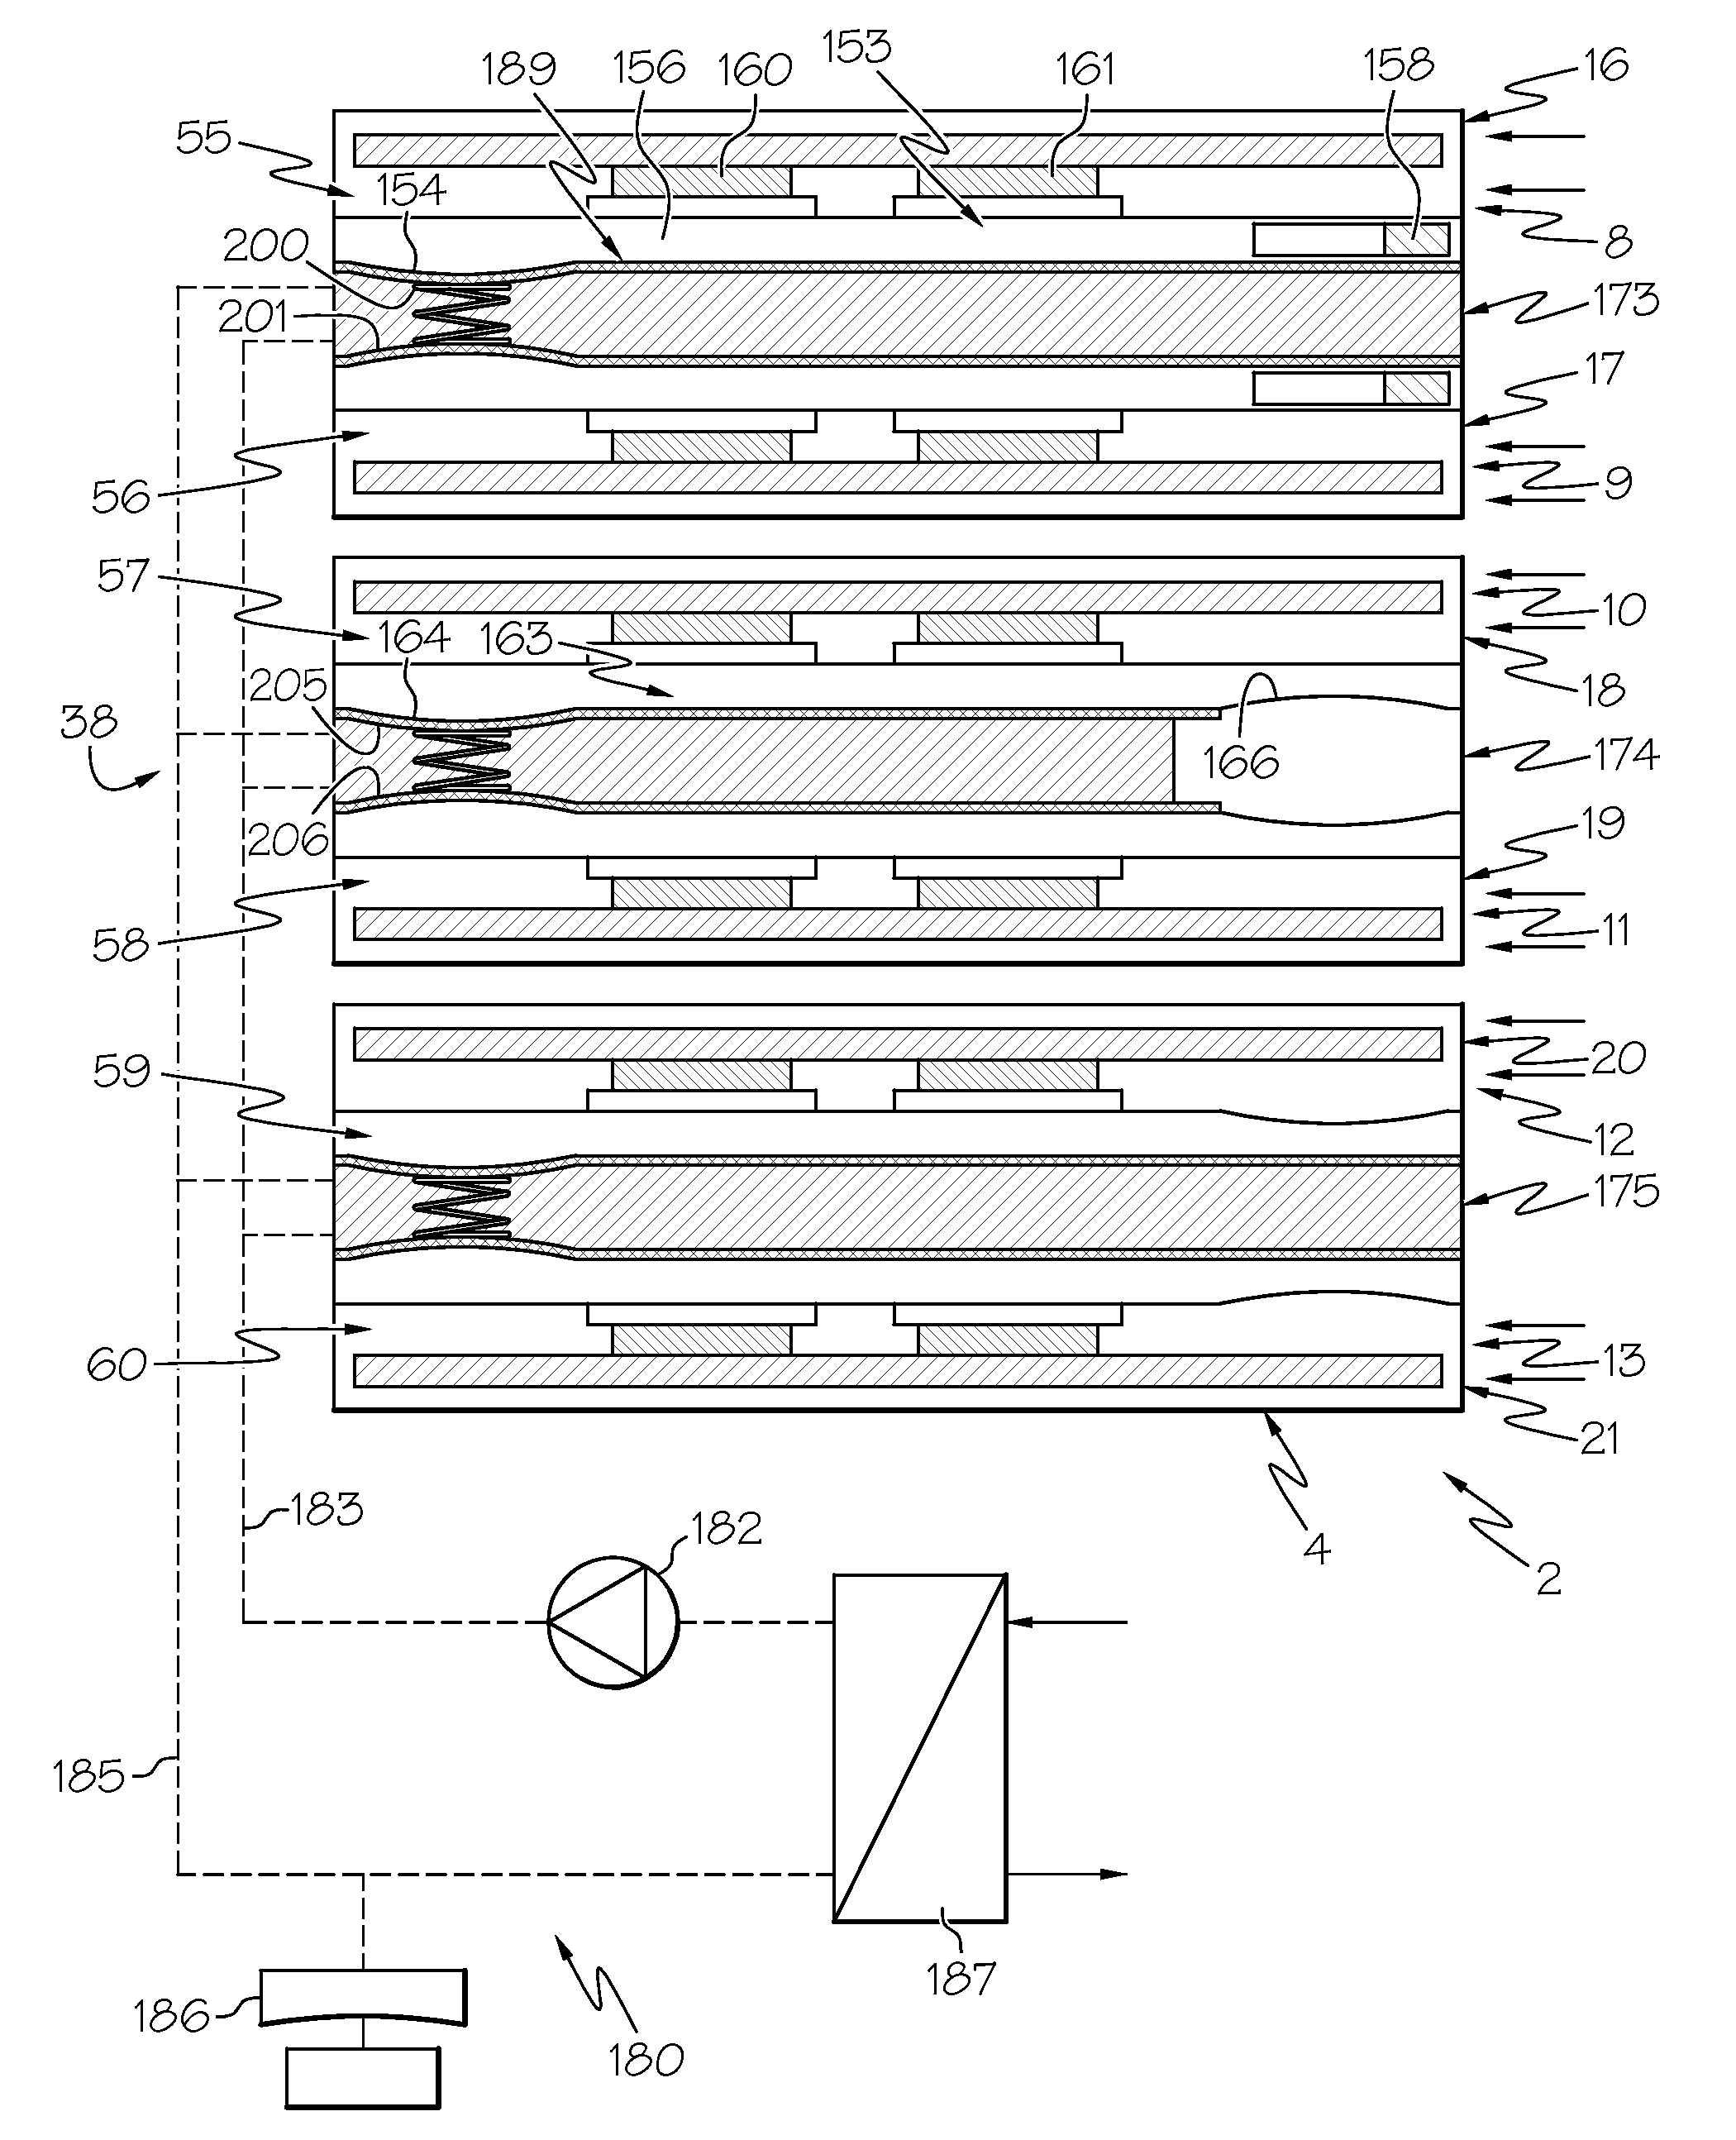 #3E3E3E Patent US7872867 Cooling System For An Electronic  Recommended 2667 Electronic Cooling System pics with 2100x2588 px on helpvideos.info - Air Conditioners, Air Coolers and more